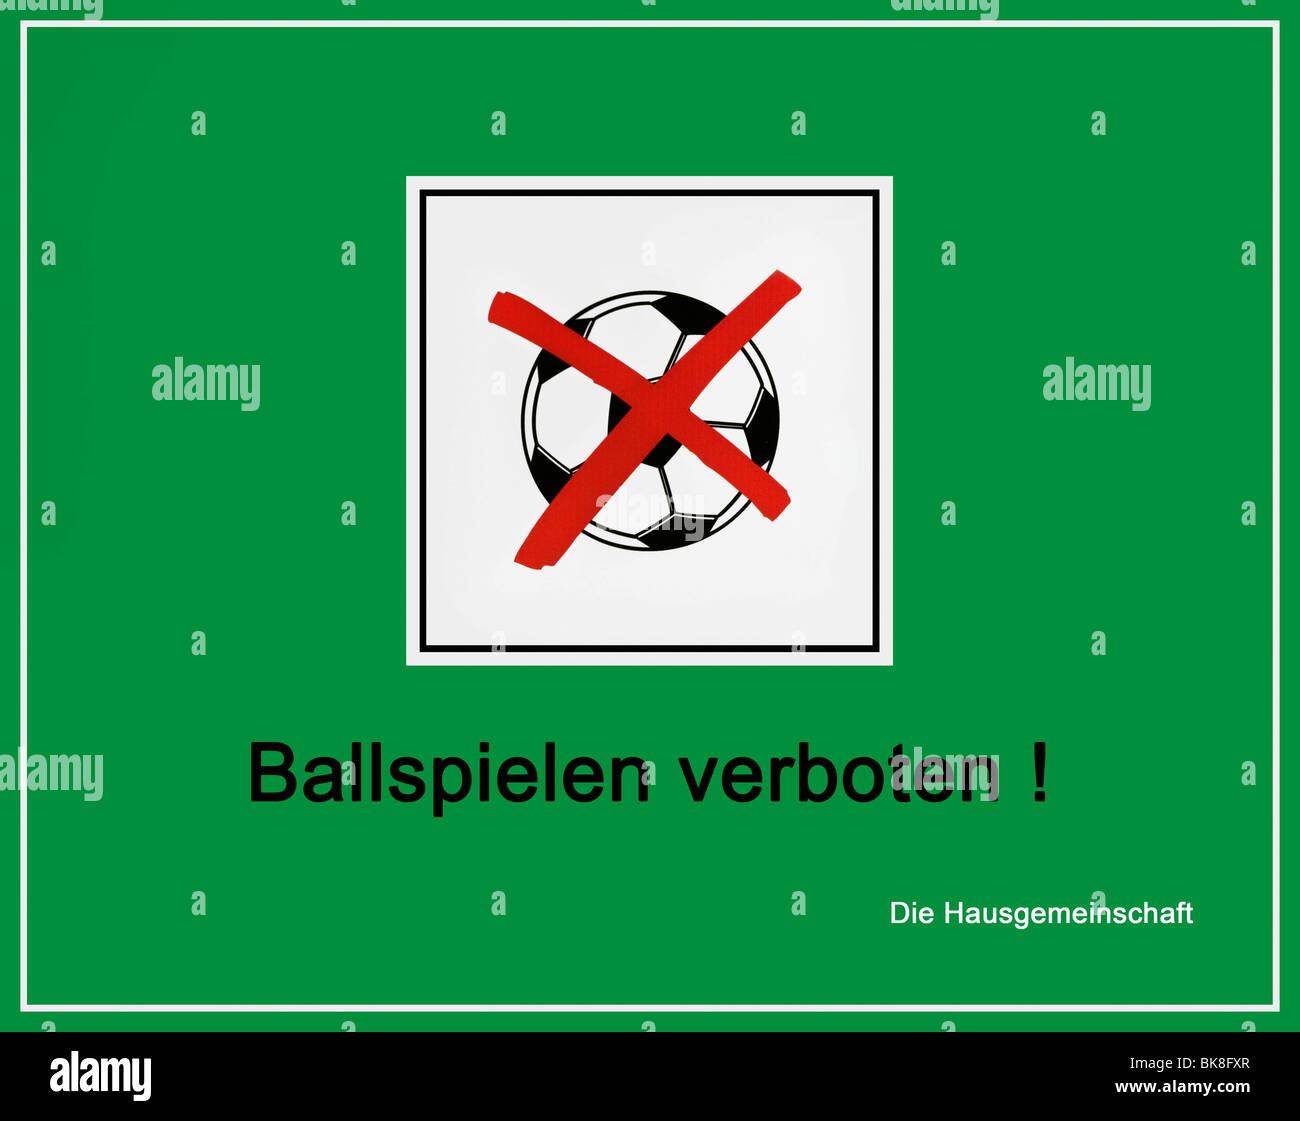 Green sign, information board, crossed out football, 'Ball games prohibited! The Household' - Stock Image